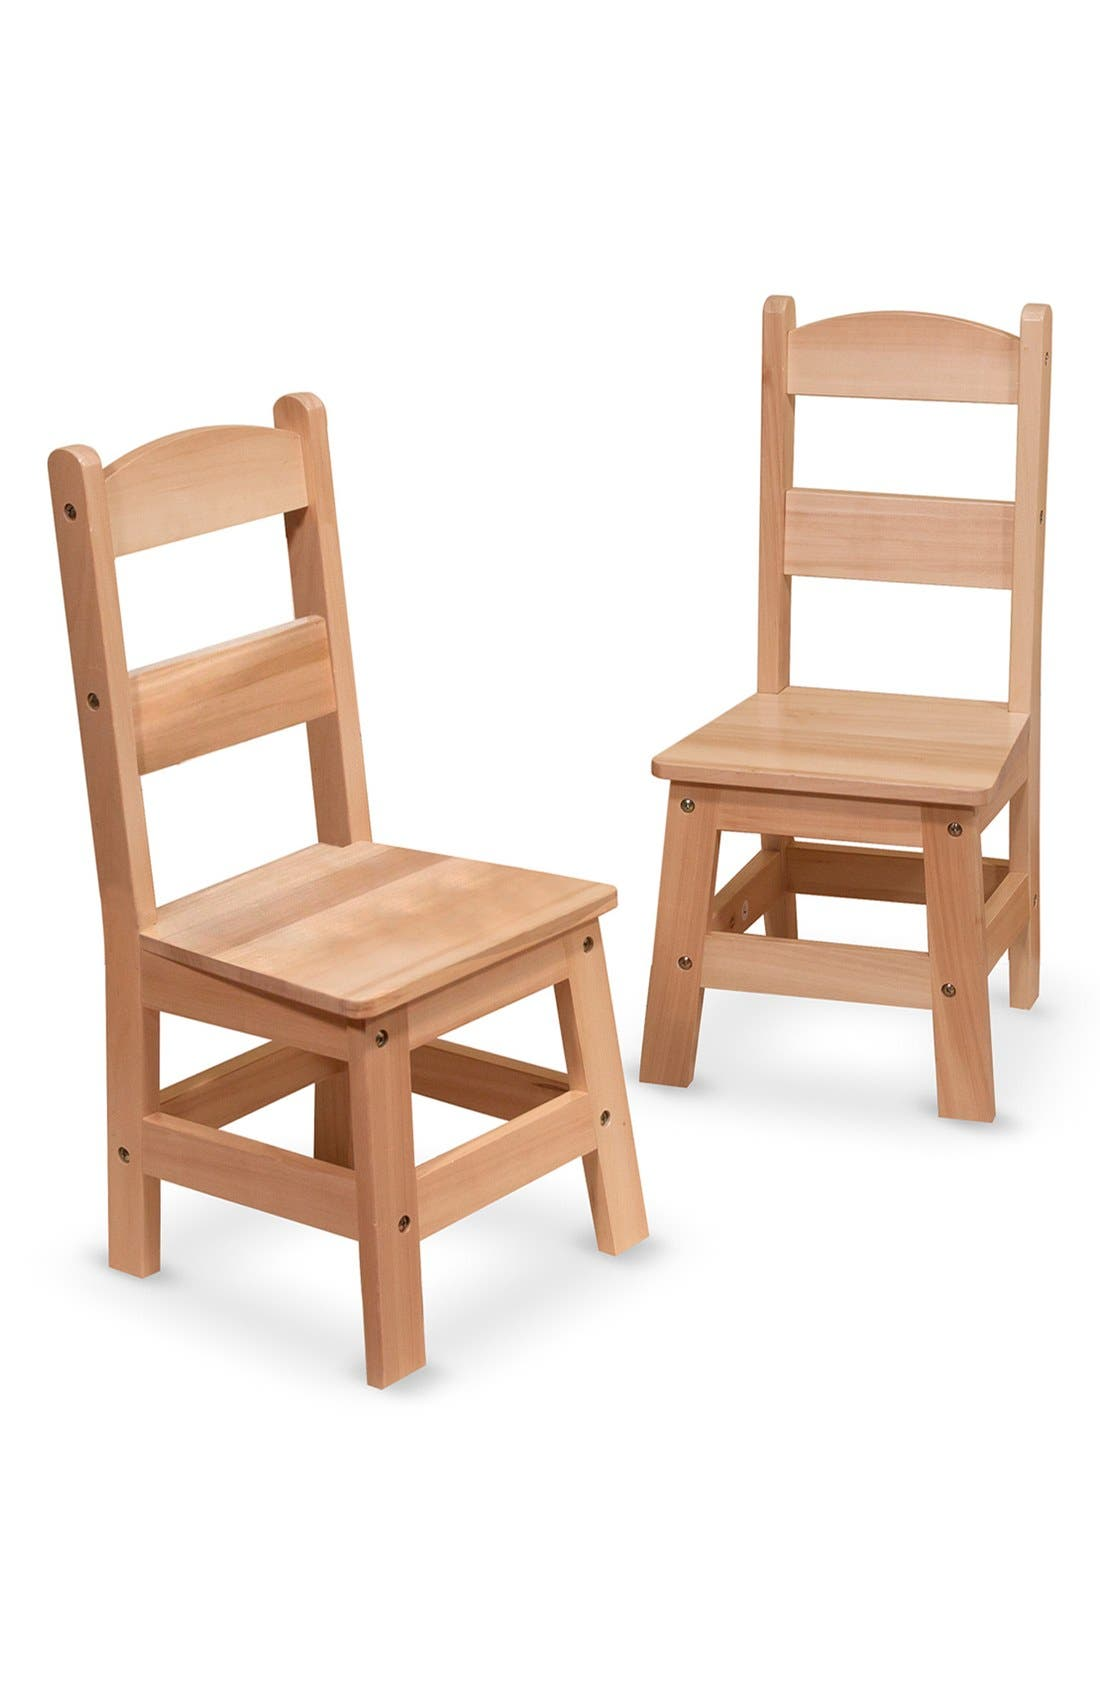 Melissa & Doug Wooden Chairs (Set of 2)